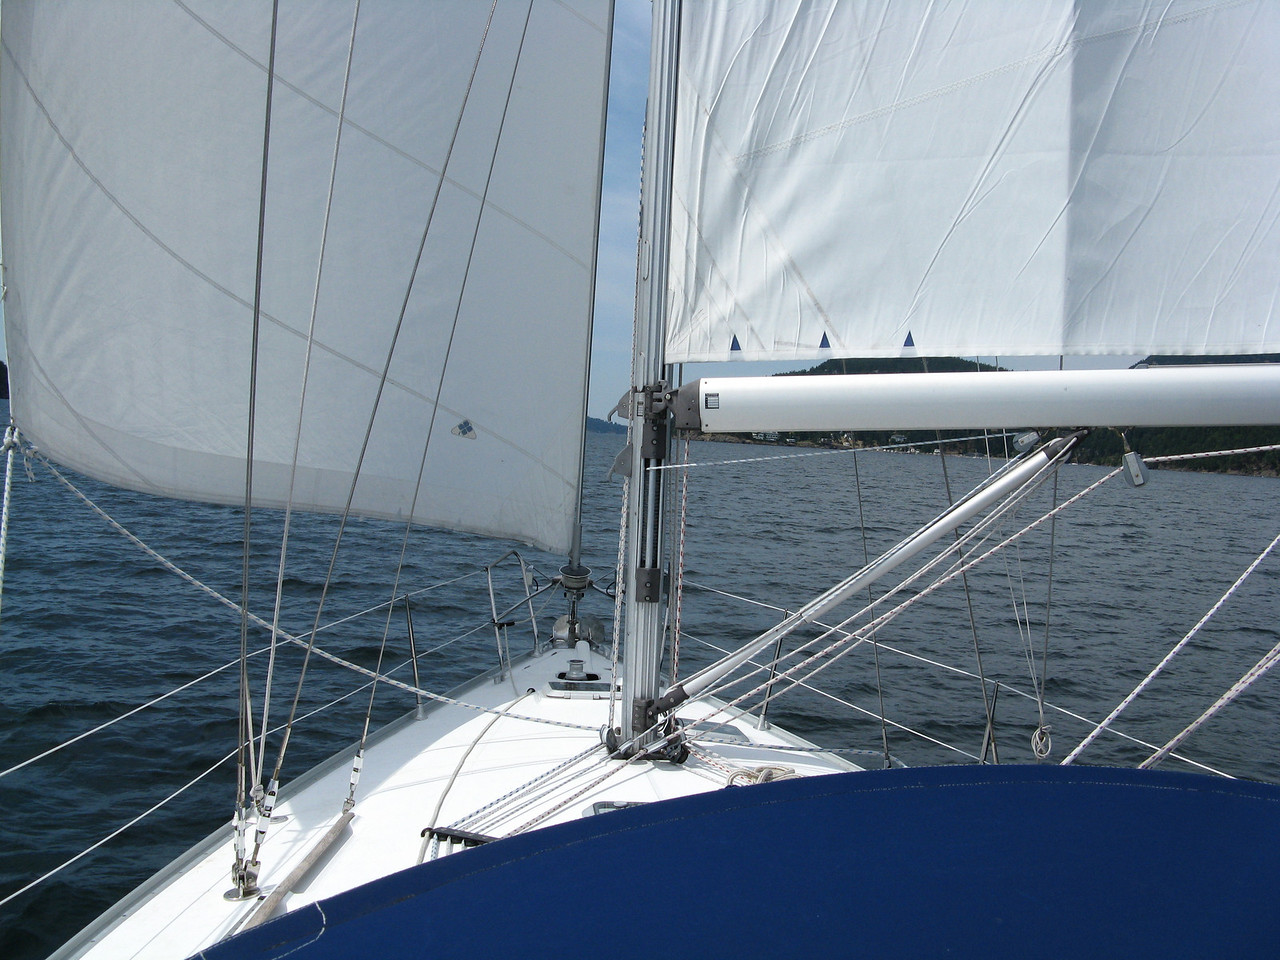 On Friday afternoon we sailed from Sucia Island to Rosario on Orcas Island.  We were running with the sails set to wing-and-wing wtih a southerly wind as we headed up East Sound,